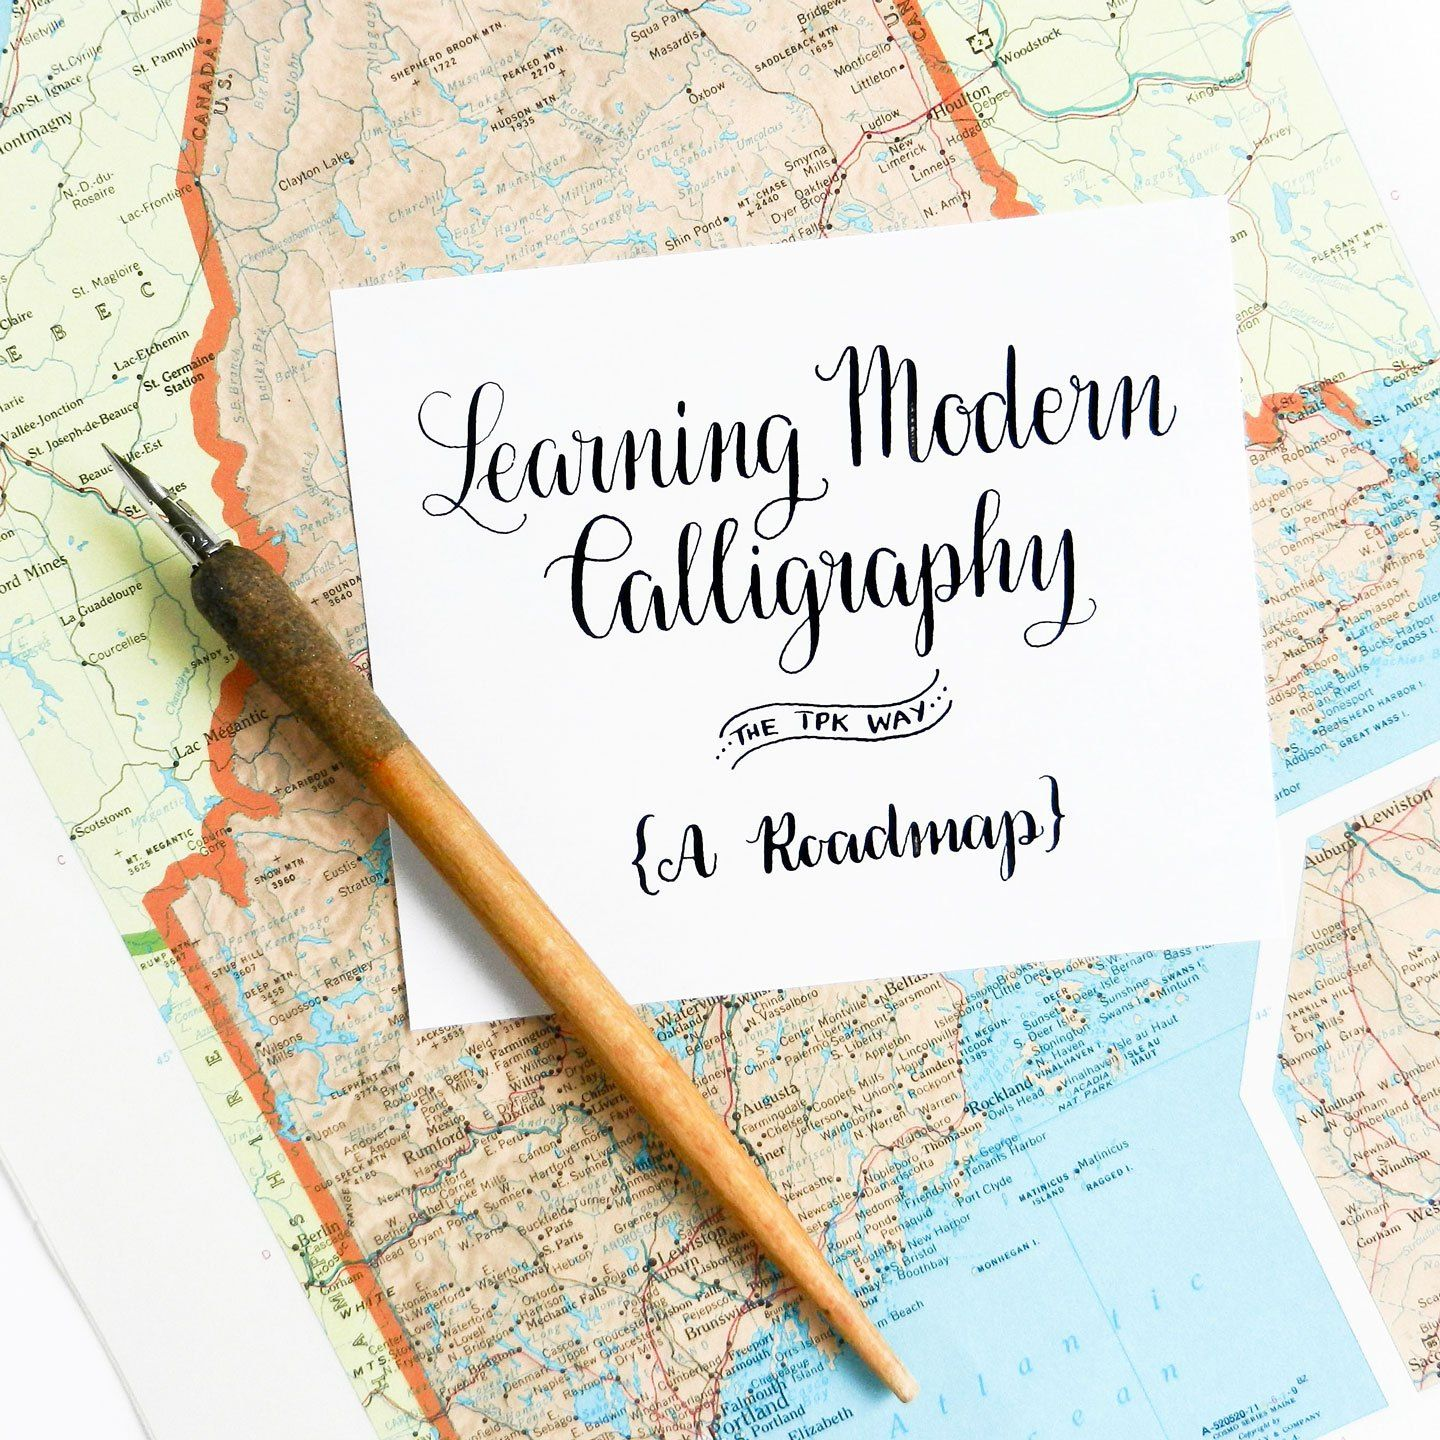 5 Tips For Taking Photos Of Artwork And Calligraphy